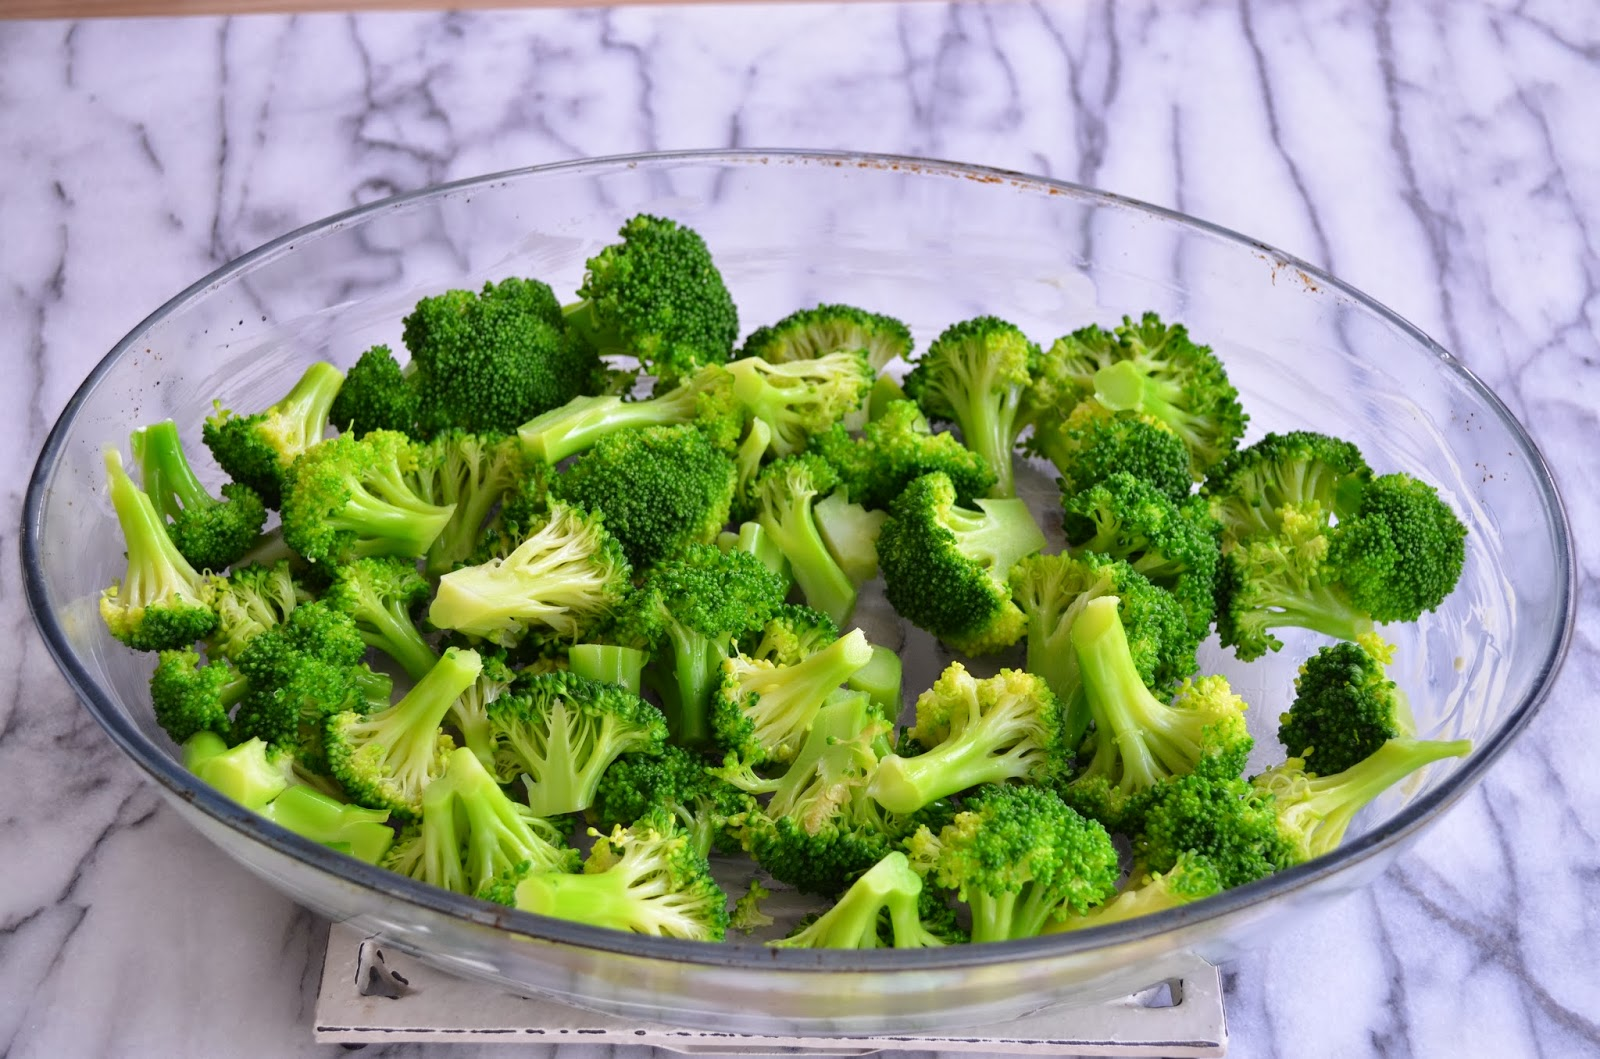 Macaroni and cheese with broccoli - assembling the ingredients